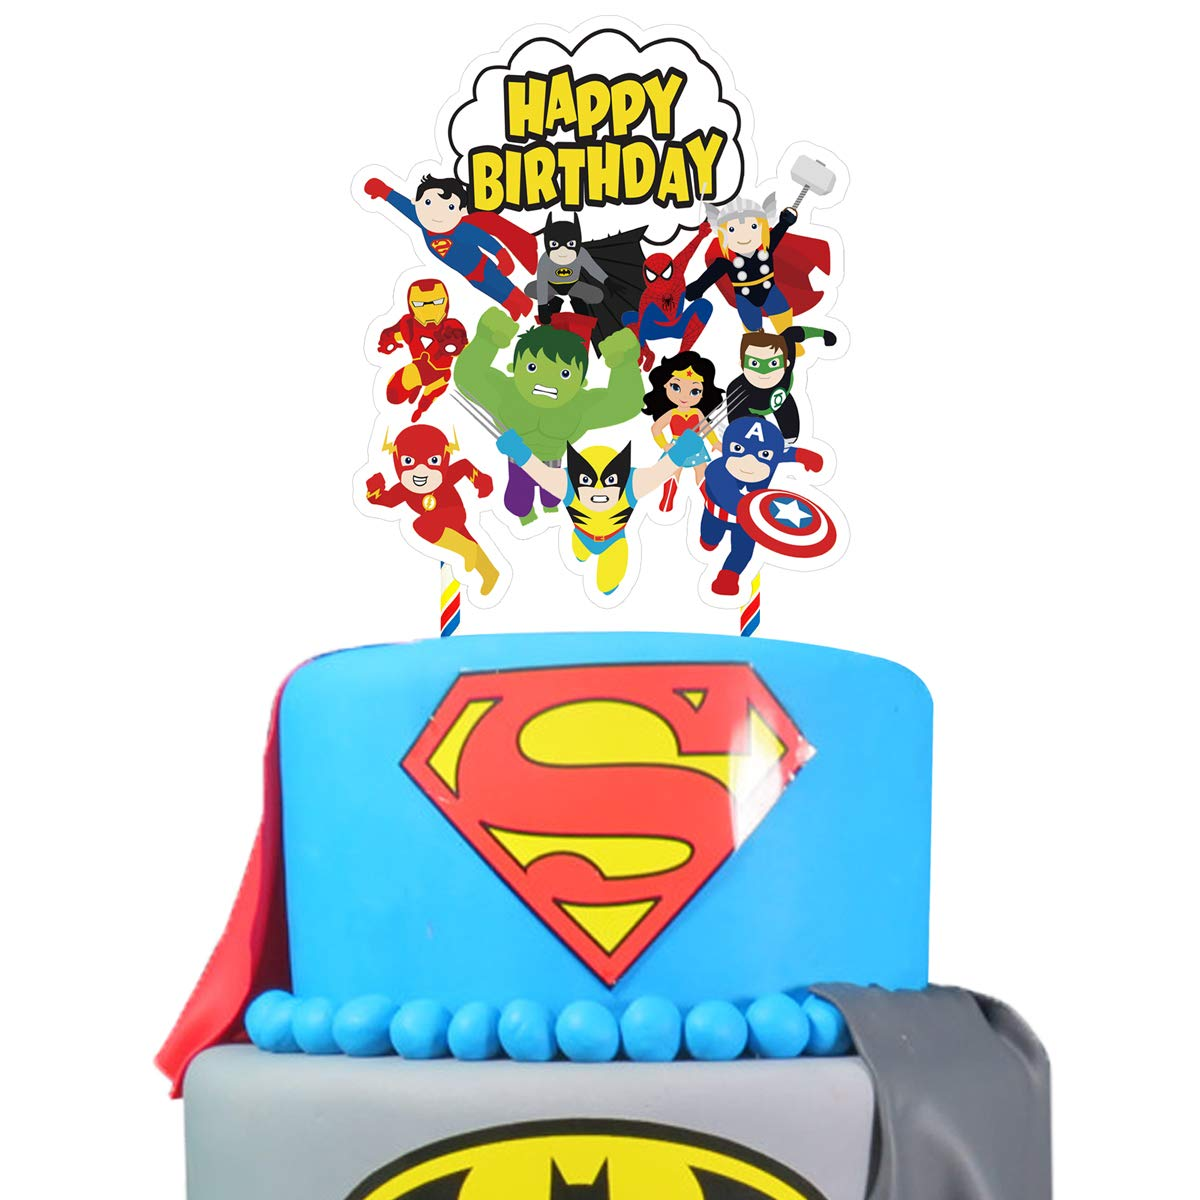 1 Superhero Cake Topper Birthday Cupcake Toppers Decorations Party Supplies For Fans Of Super Hero Amazon Com Grocery Gourmet Food